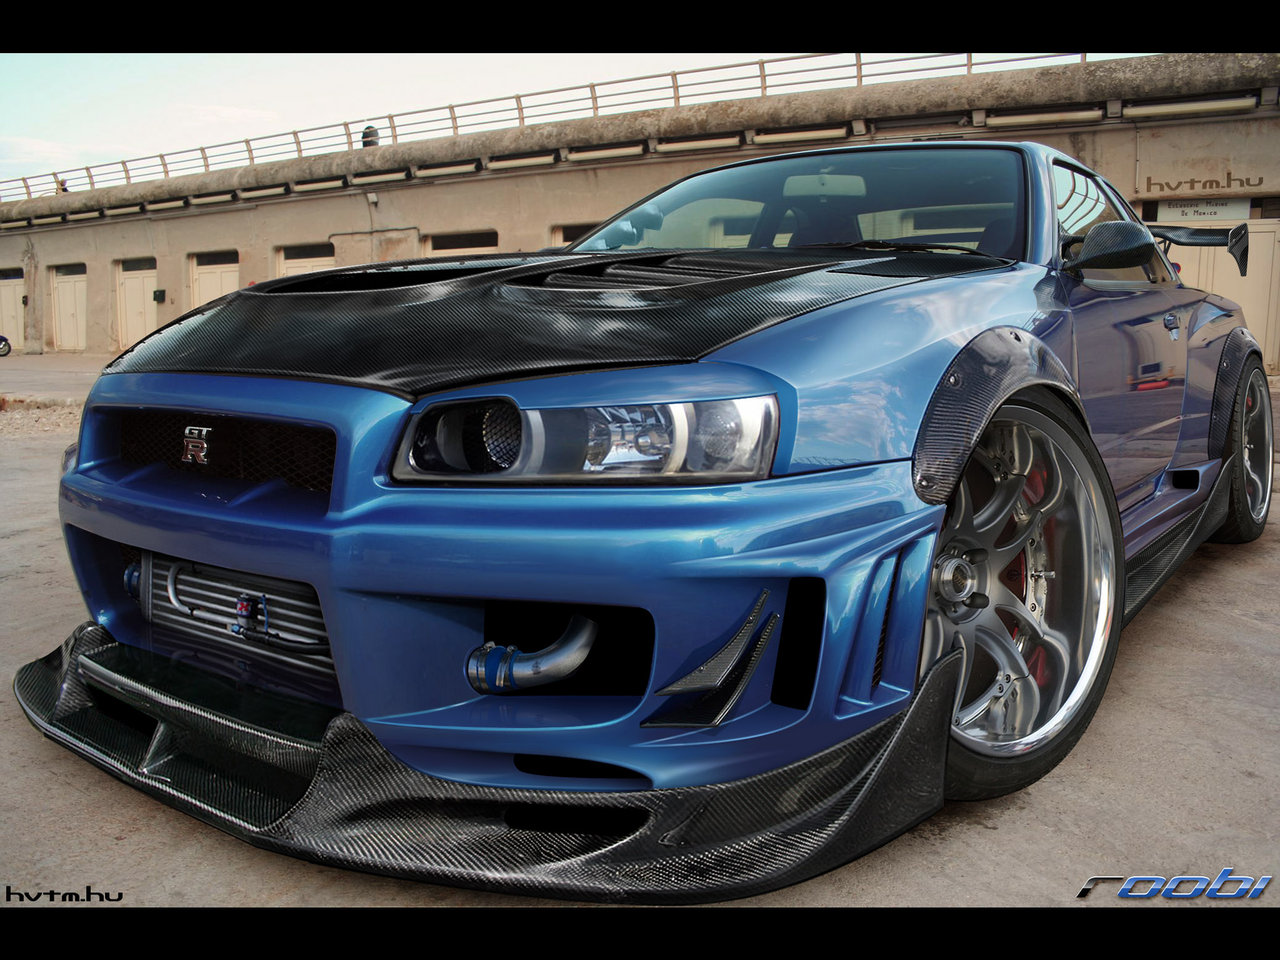 Nissan Skyline R34 Wallpaper Its My Car Club